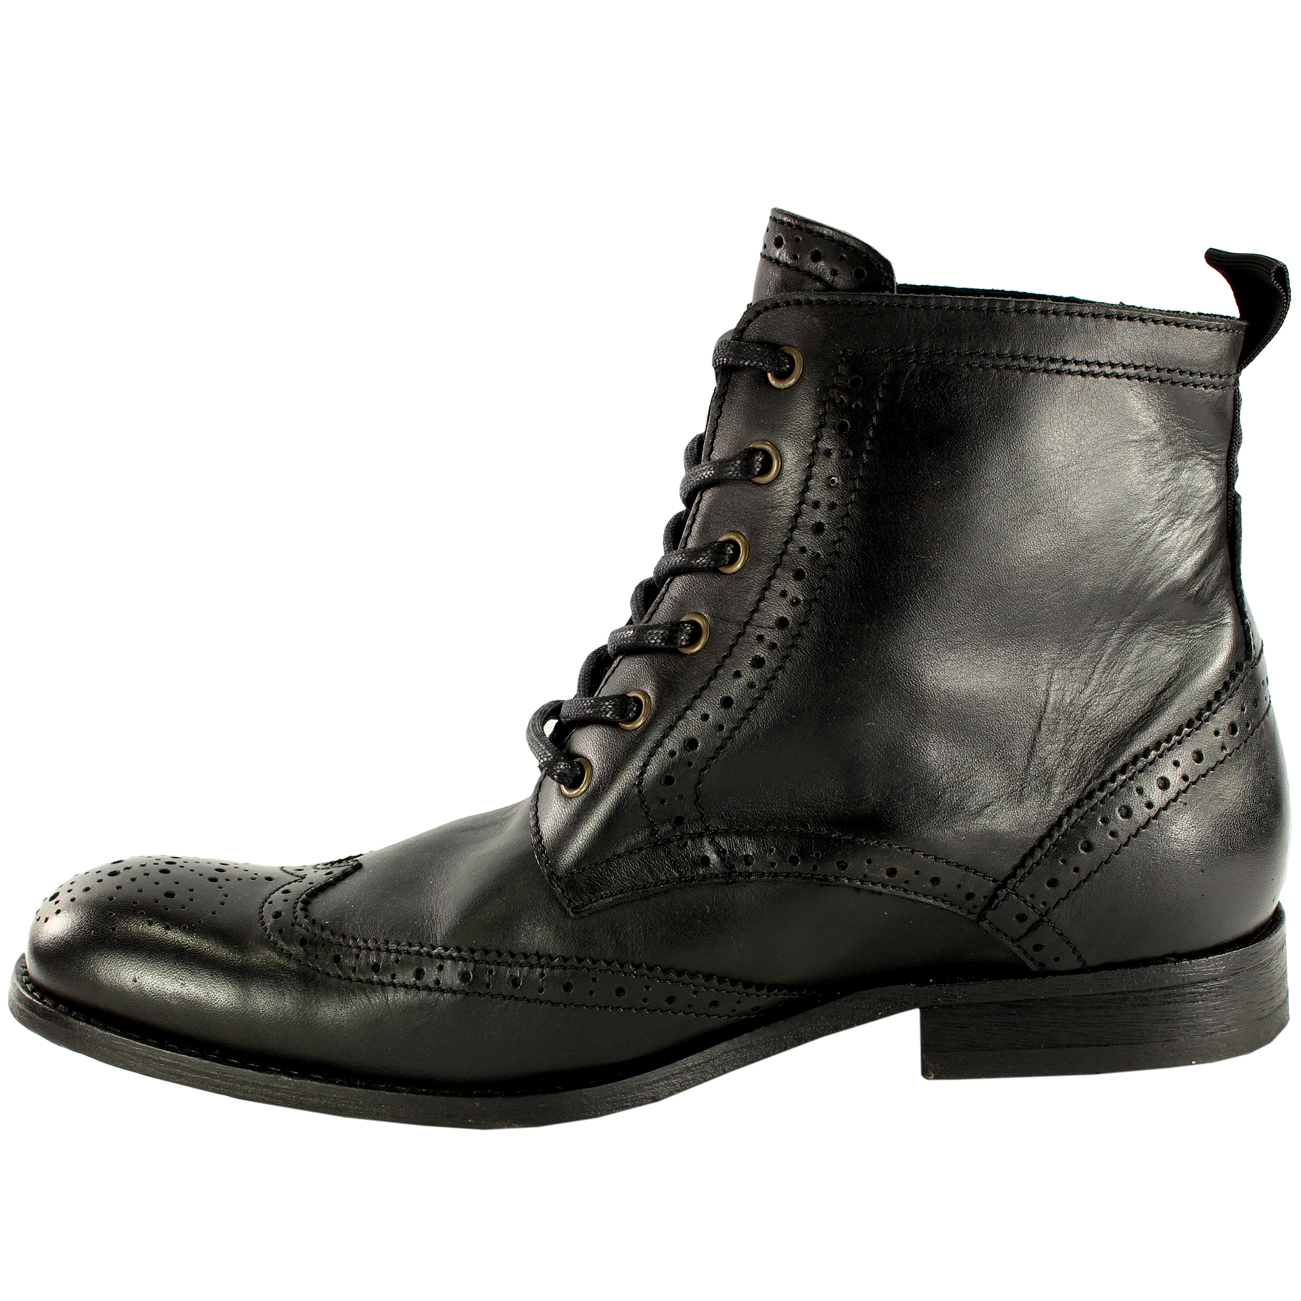 H By Hudson Mens Lace-Up Boots Black